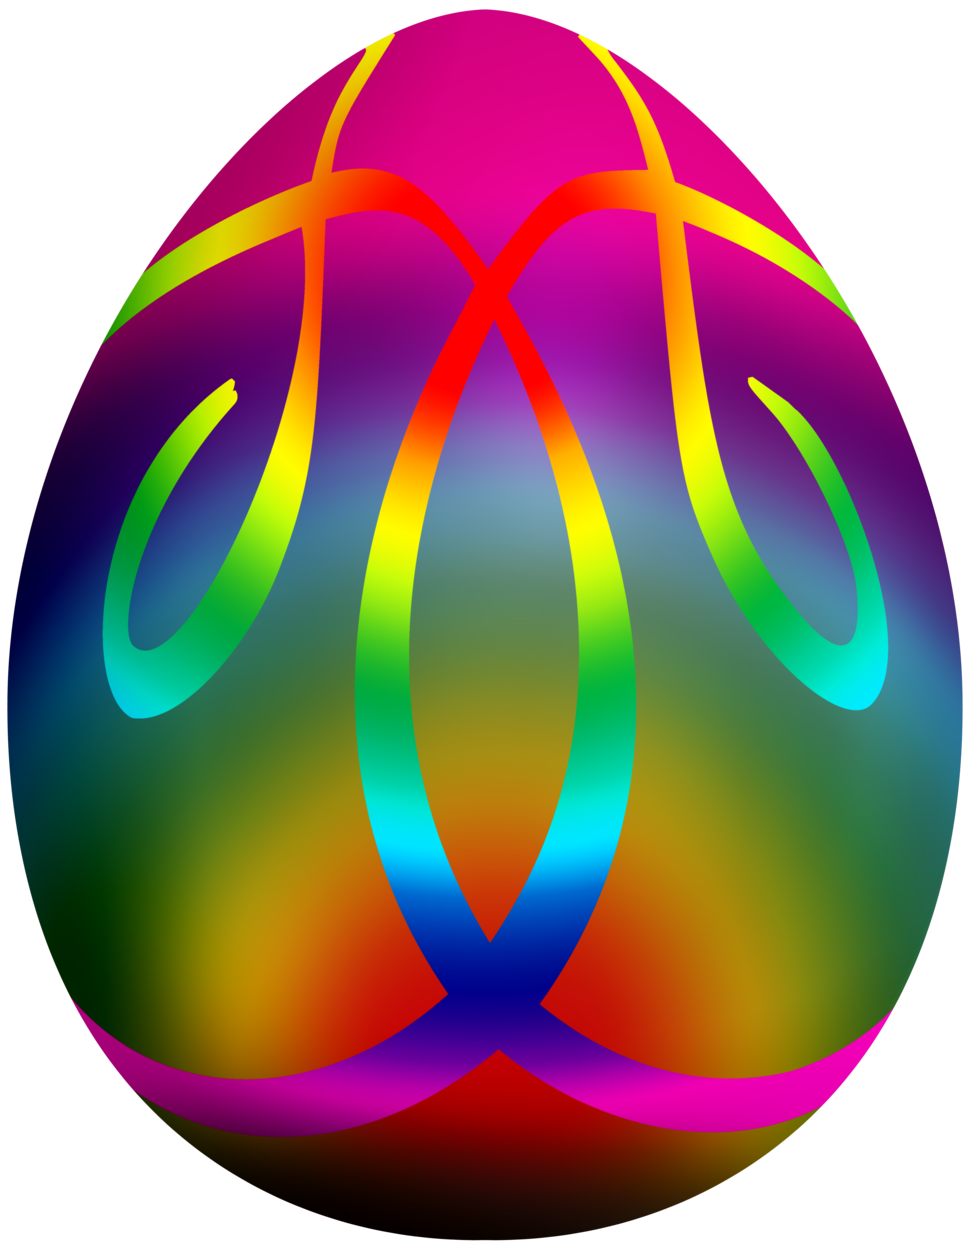 Easter egg crown clipart svg royalty free stock Colorful Easter Egg PNG Clip Art svg royalty free stock